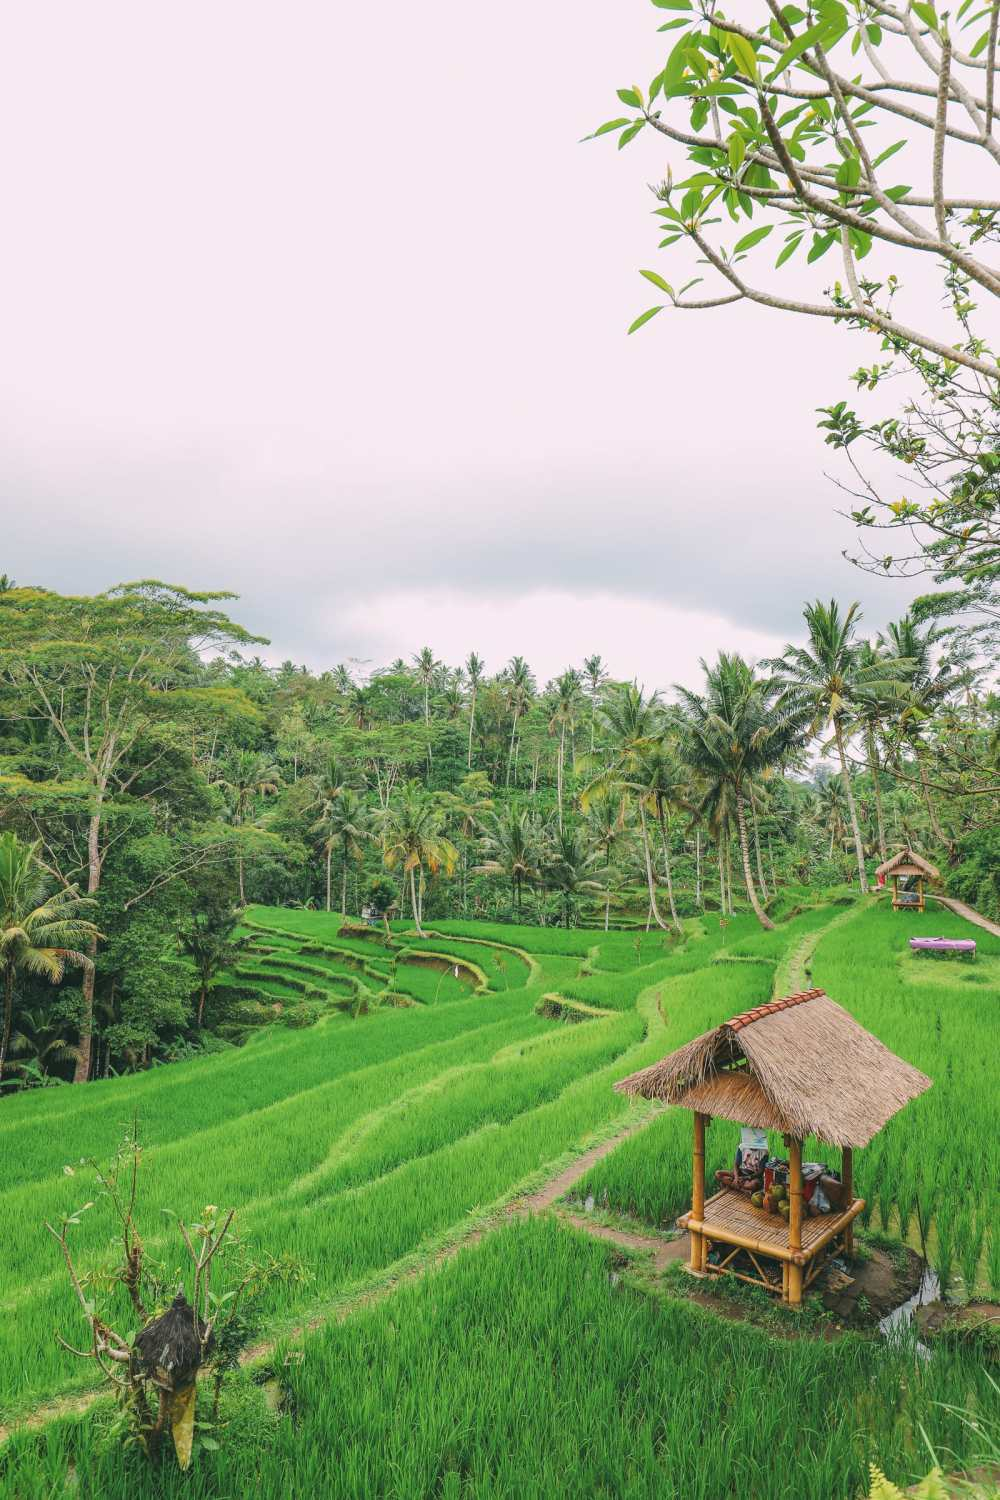 Bali Travel - Tegalalang Rice Terrace In Ubud And Gunung Kawi Temple (47)